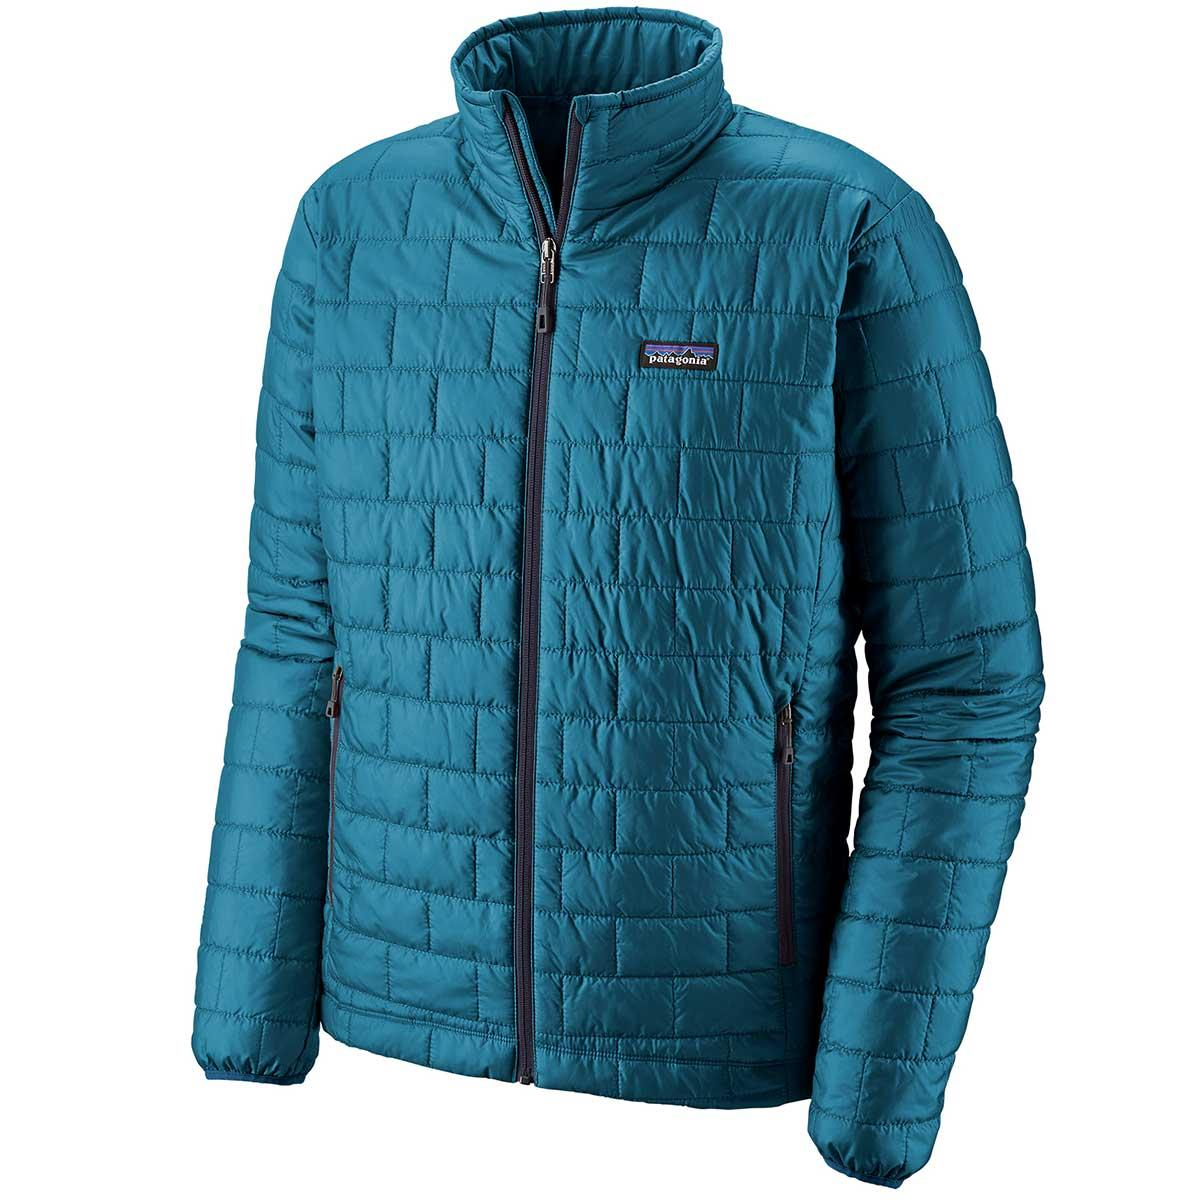 Patagonia men's Nano Puff Jacket in Balkan Blue